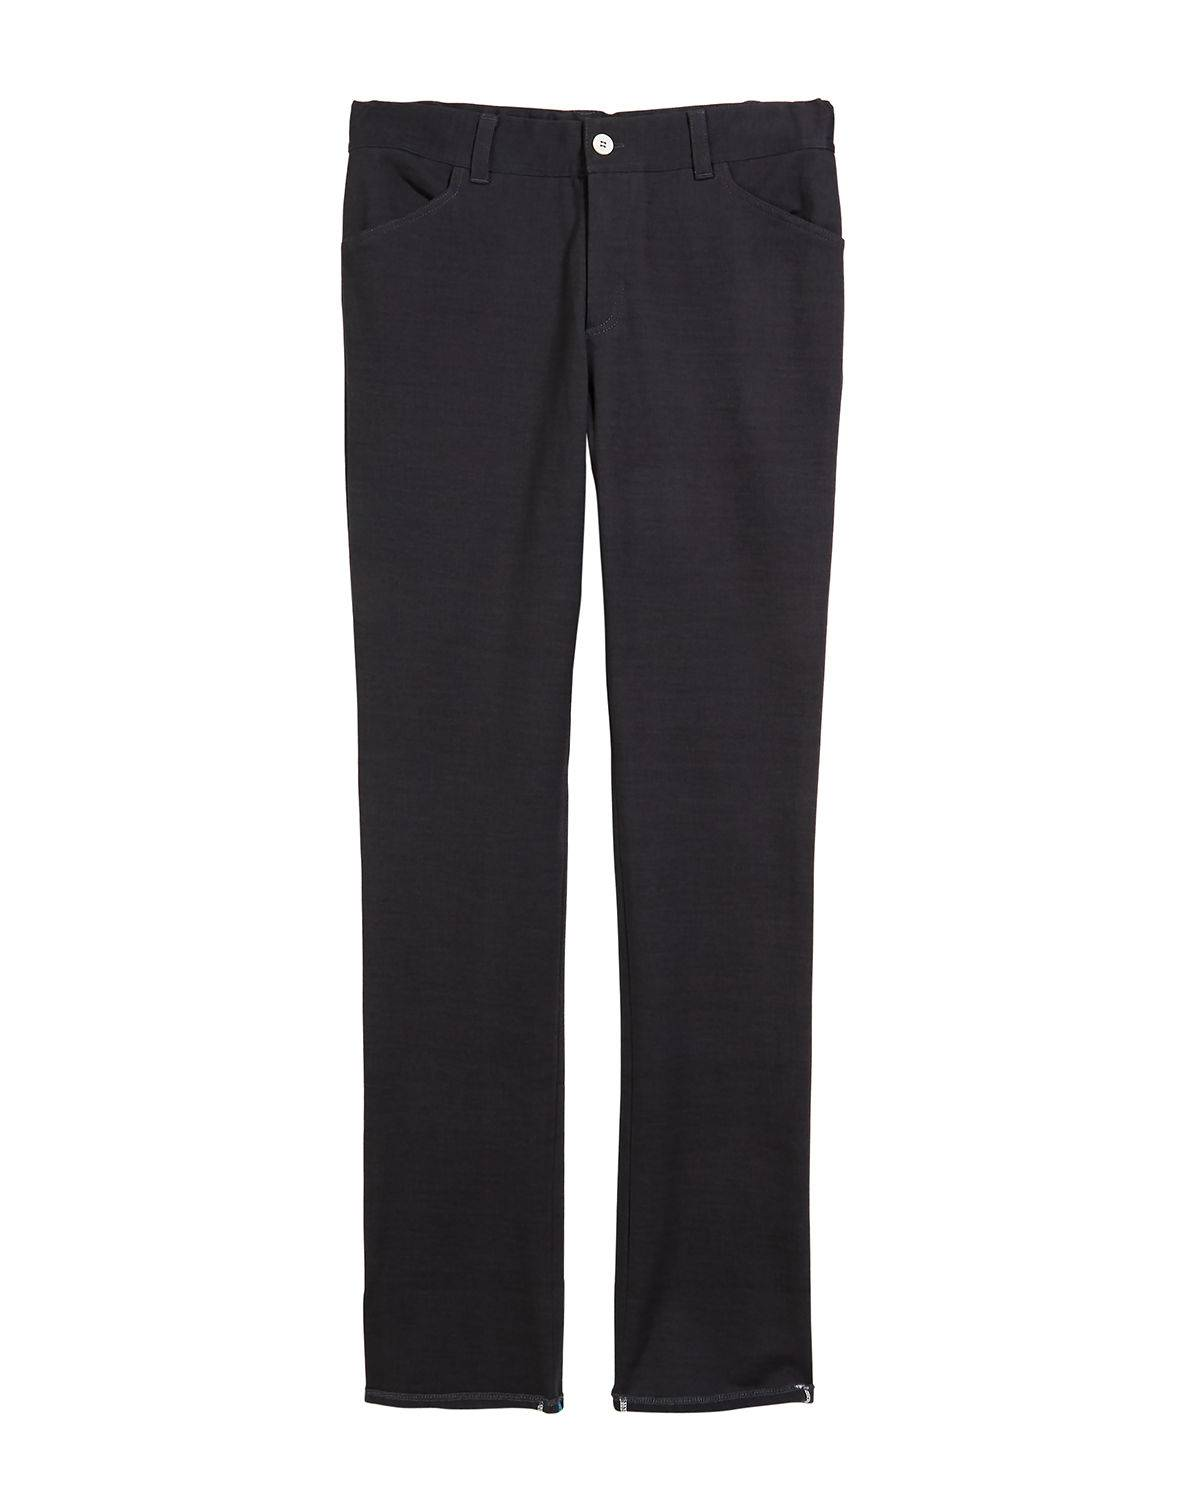 Stefano Ricci Boys' Sport Trousers, Size 10-14 - Size: 12